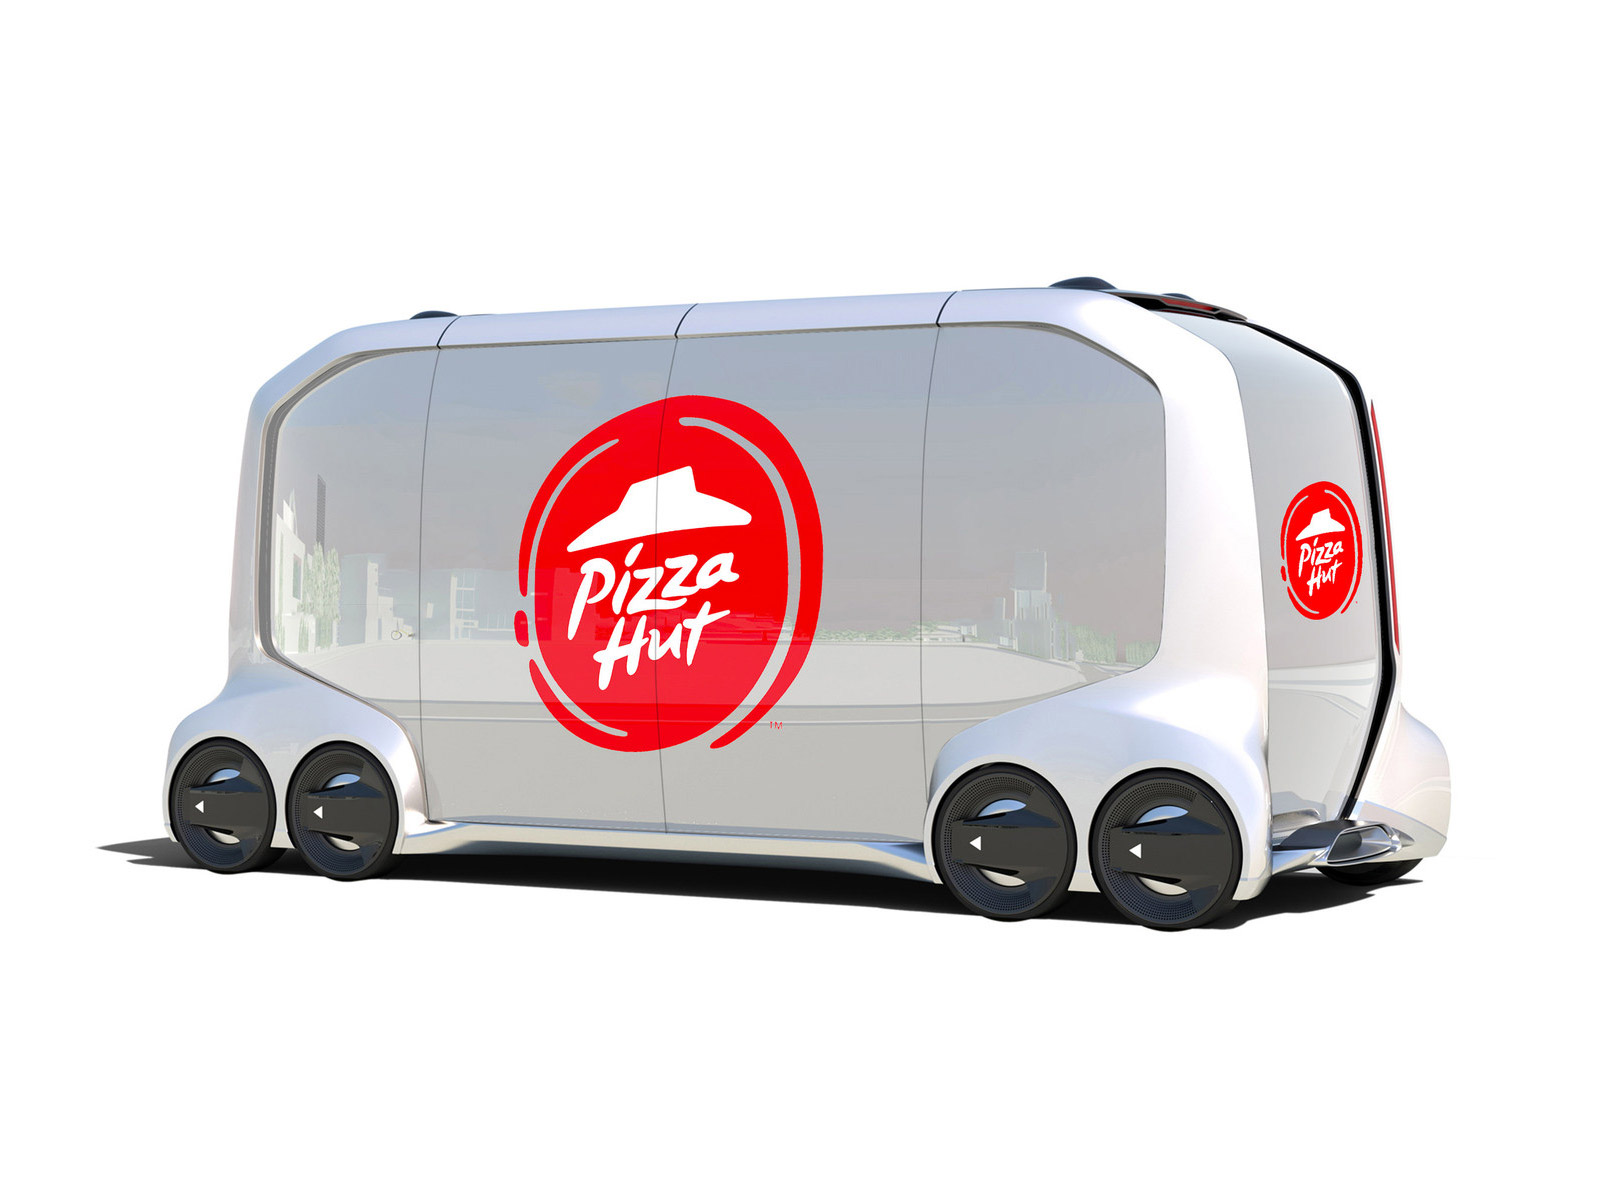 'Black Mirror's' Response to Pizza Hut's Automated Delivery Car Is Perfect